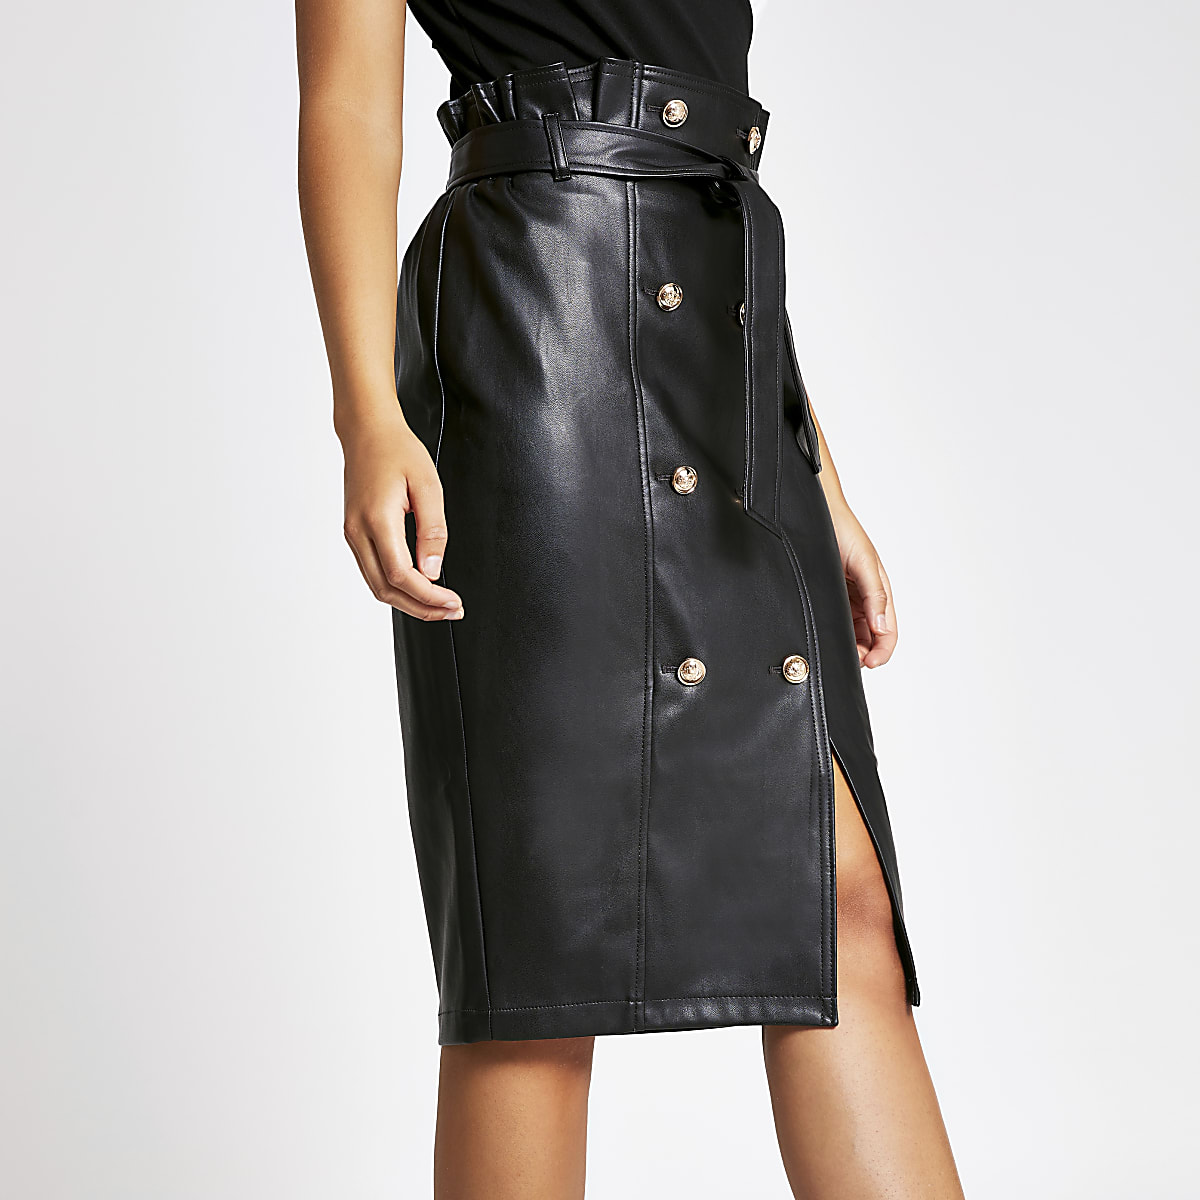 online for sale shop for genuine reasonably priced Black faux leather button front pencil skirt